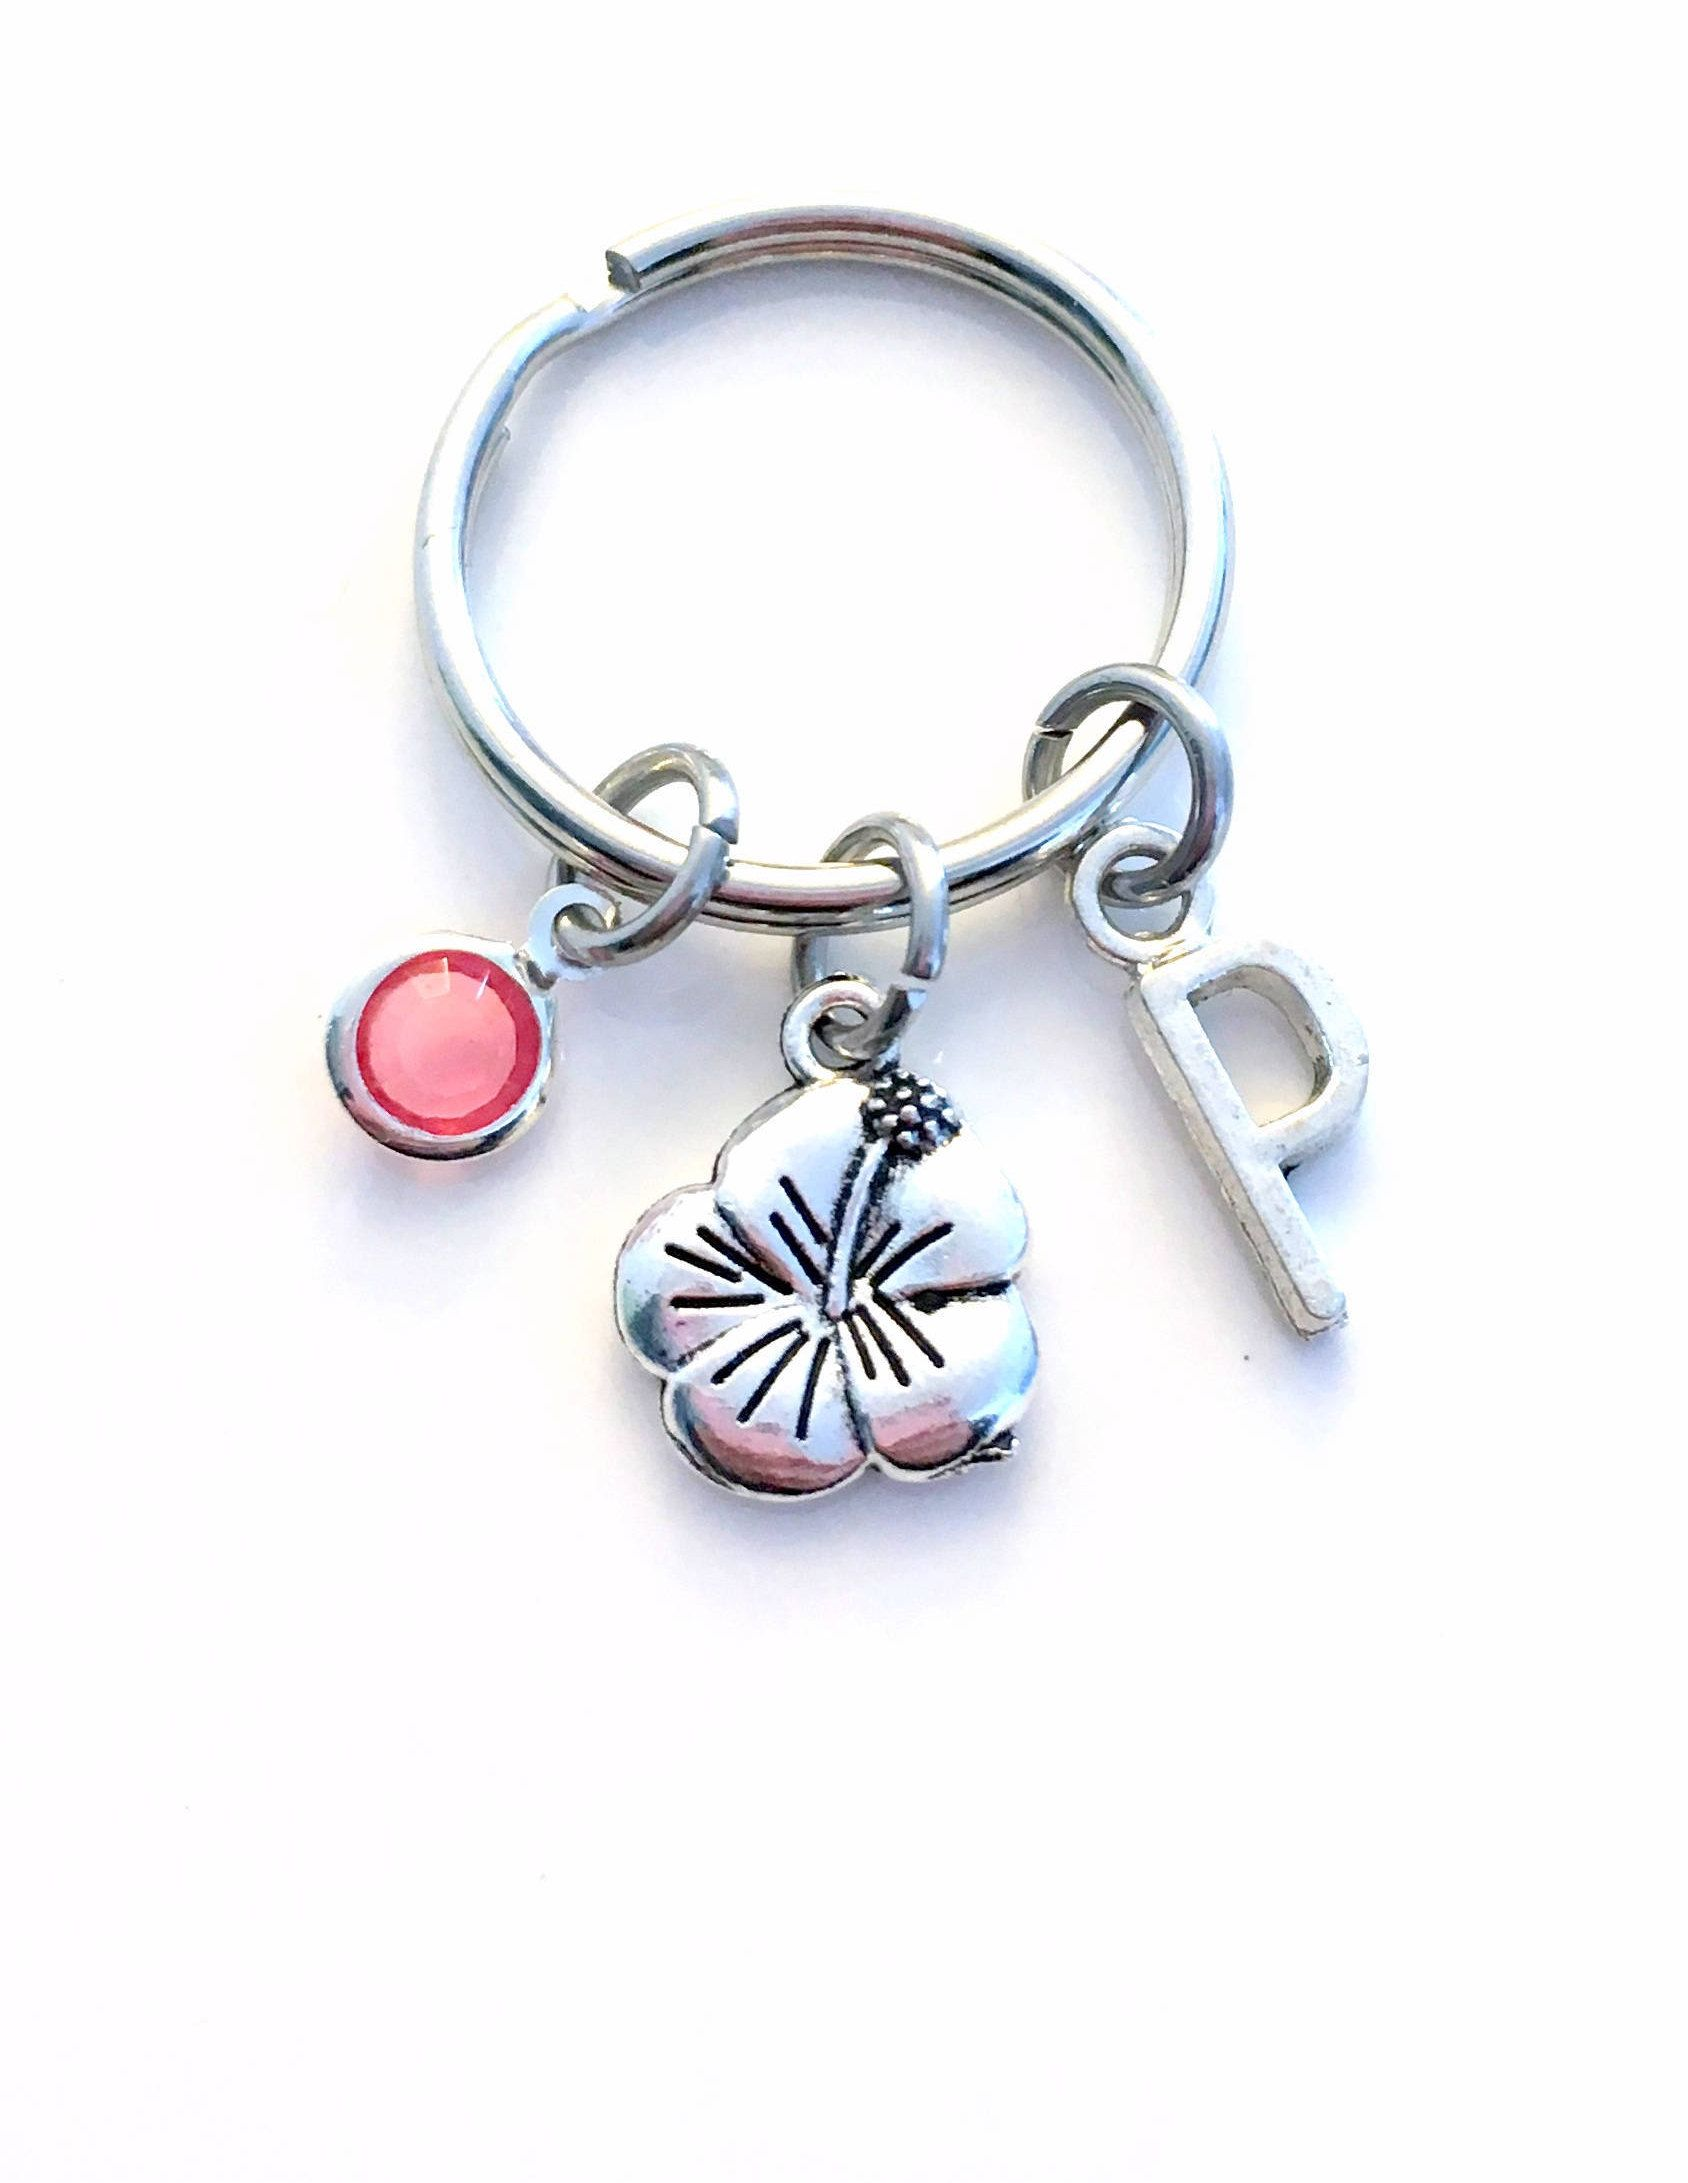 Sea Shell Key Chain Silver Vacation Beach Keyring Gift charm Initial Birthstone present Beach house cottage Jewelry Lighthouse KeyChain